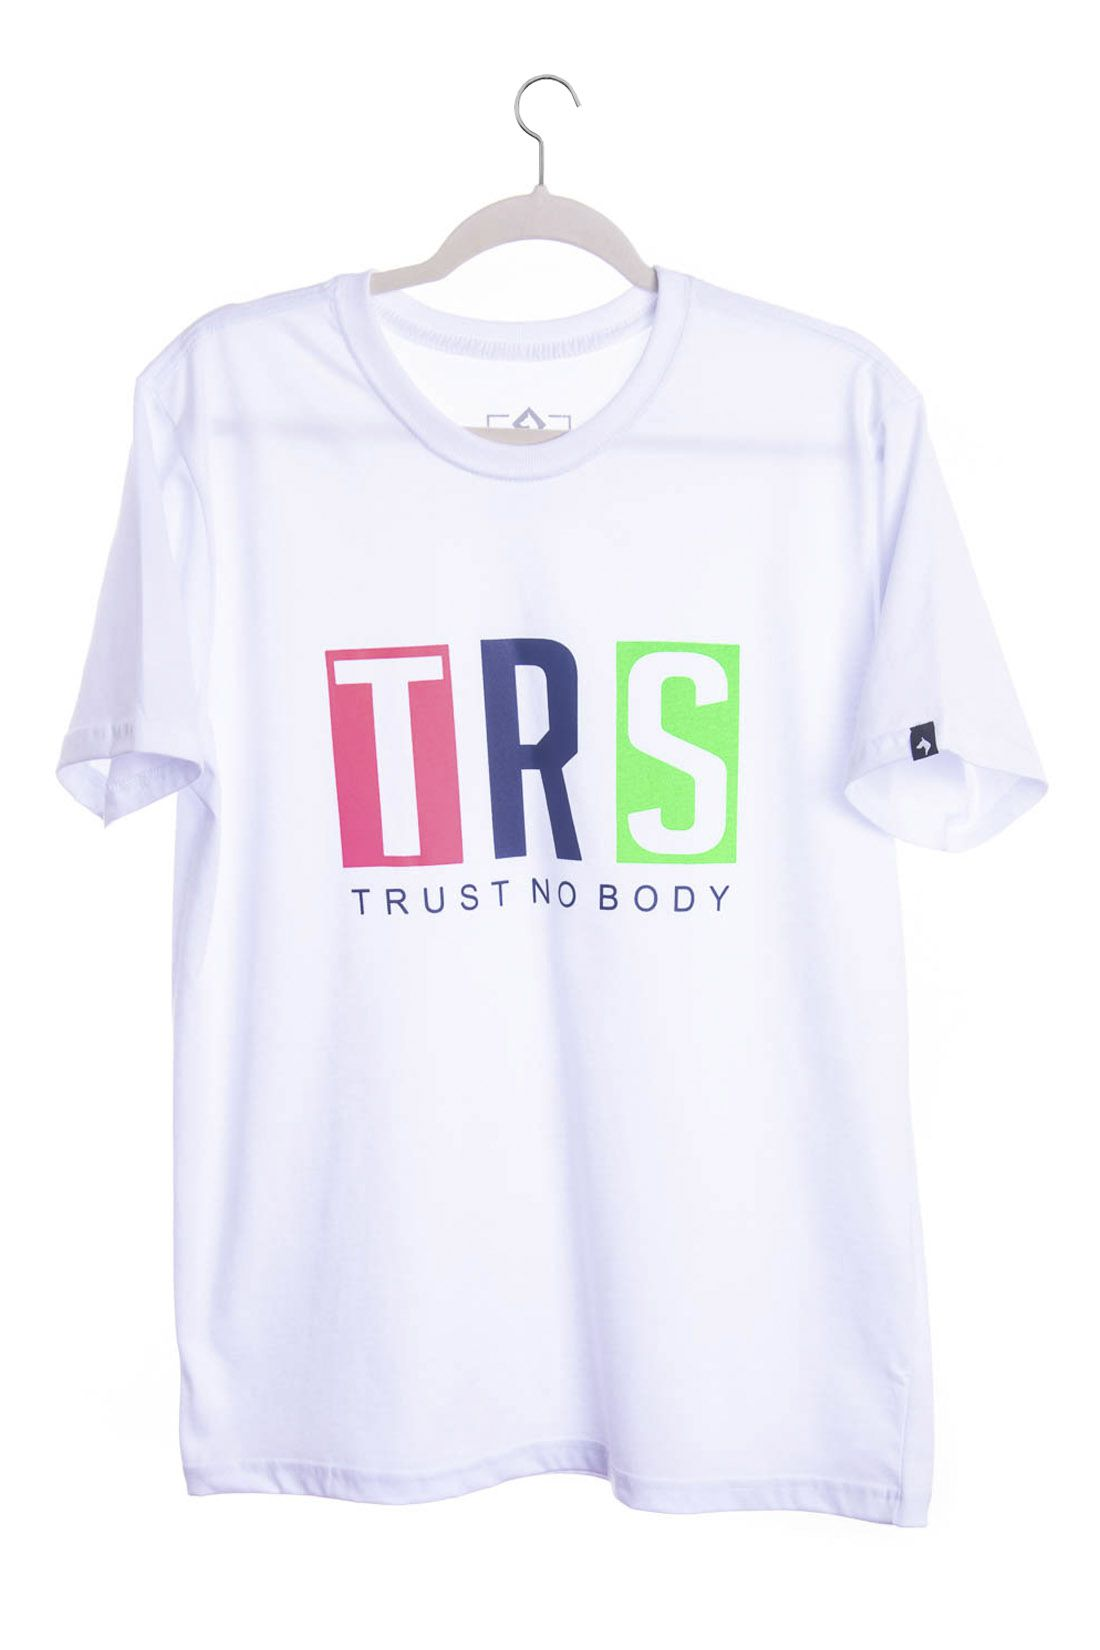 Camiseta  The Rocks Manga Curta TRS Trusty Nobody